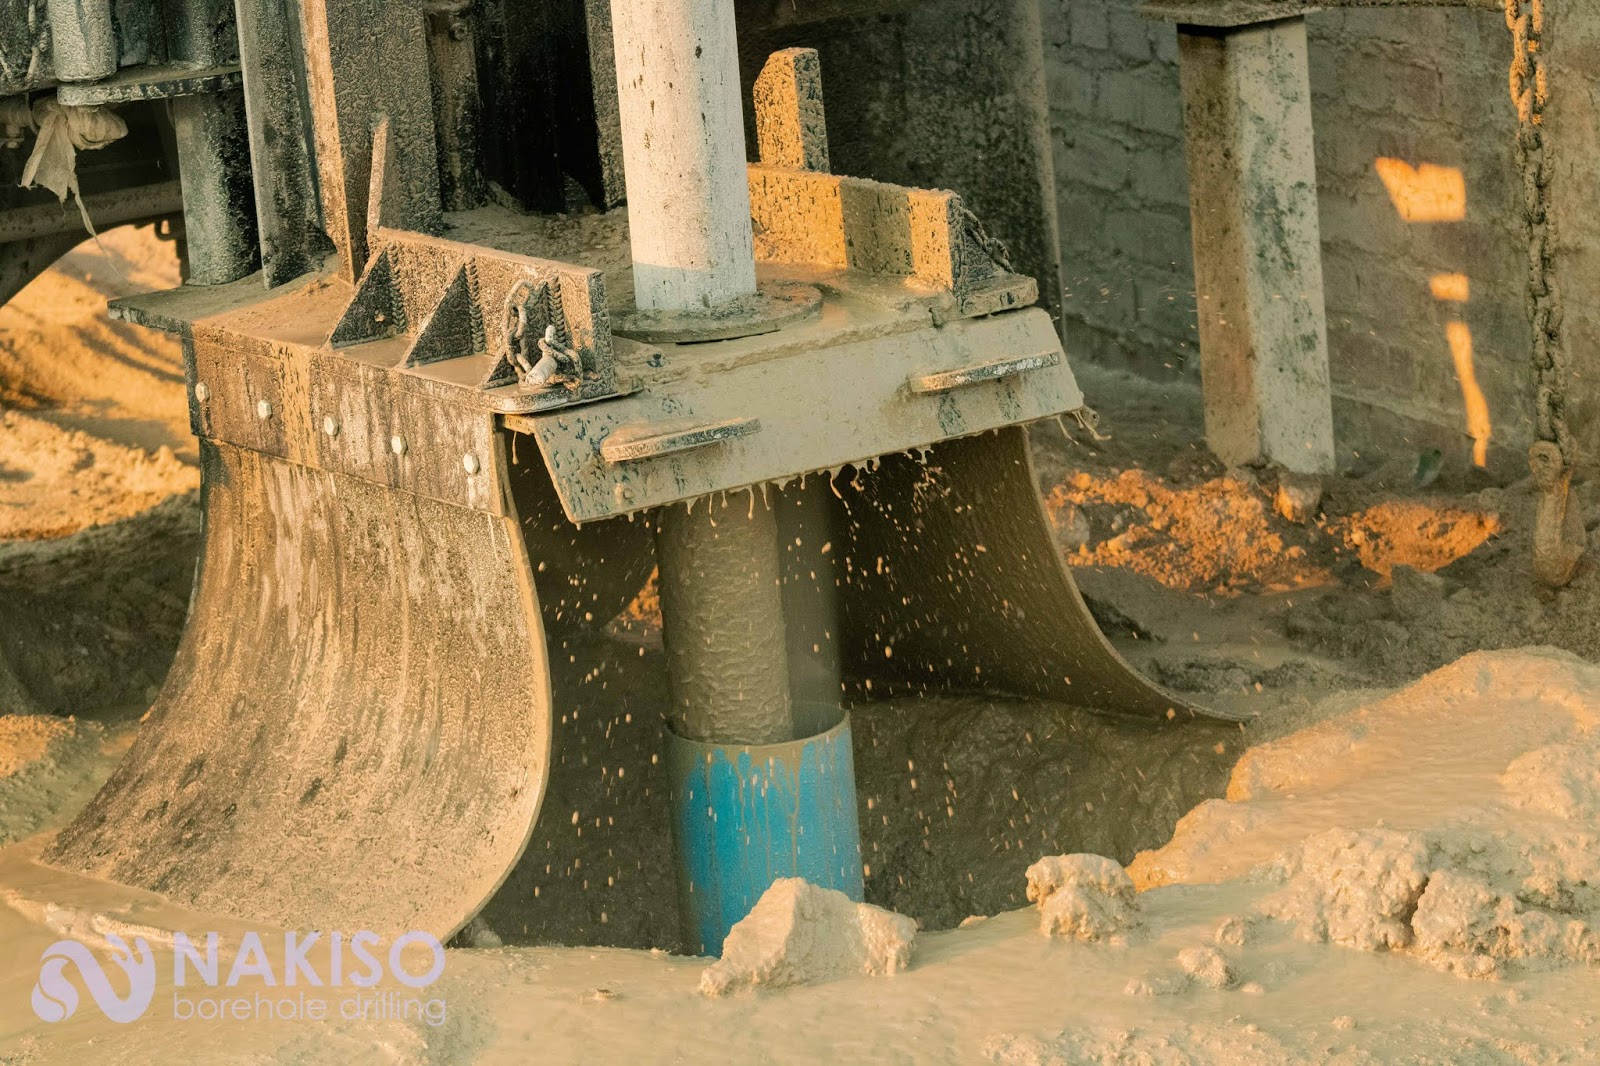 What Is A Borehole?